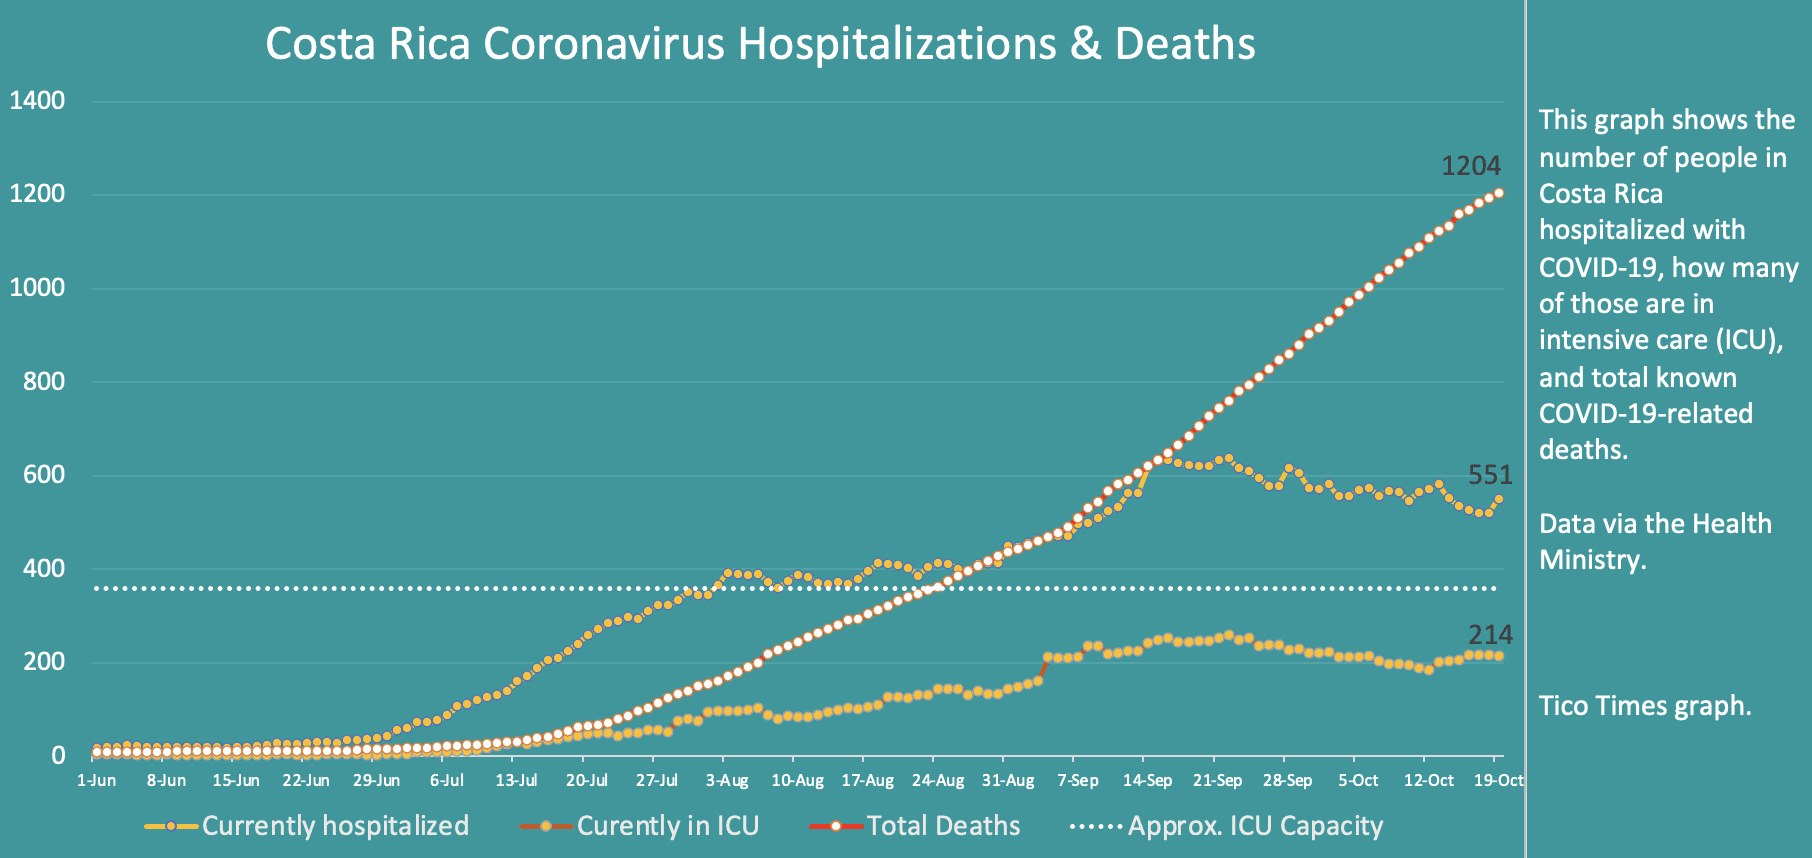 Costa Rica coronavirus hospitalizations and deaths on October 19, 2020